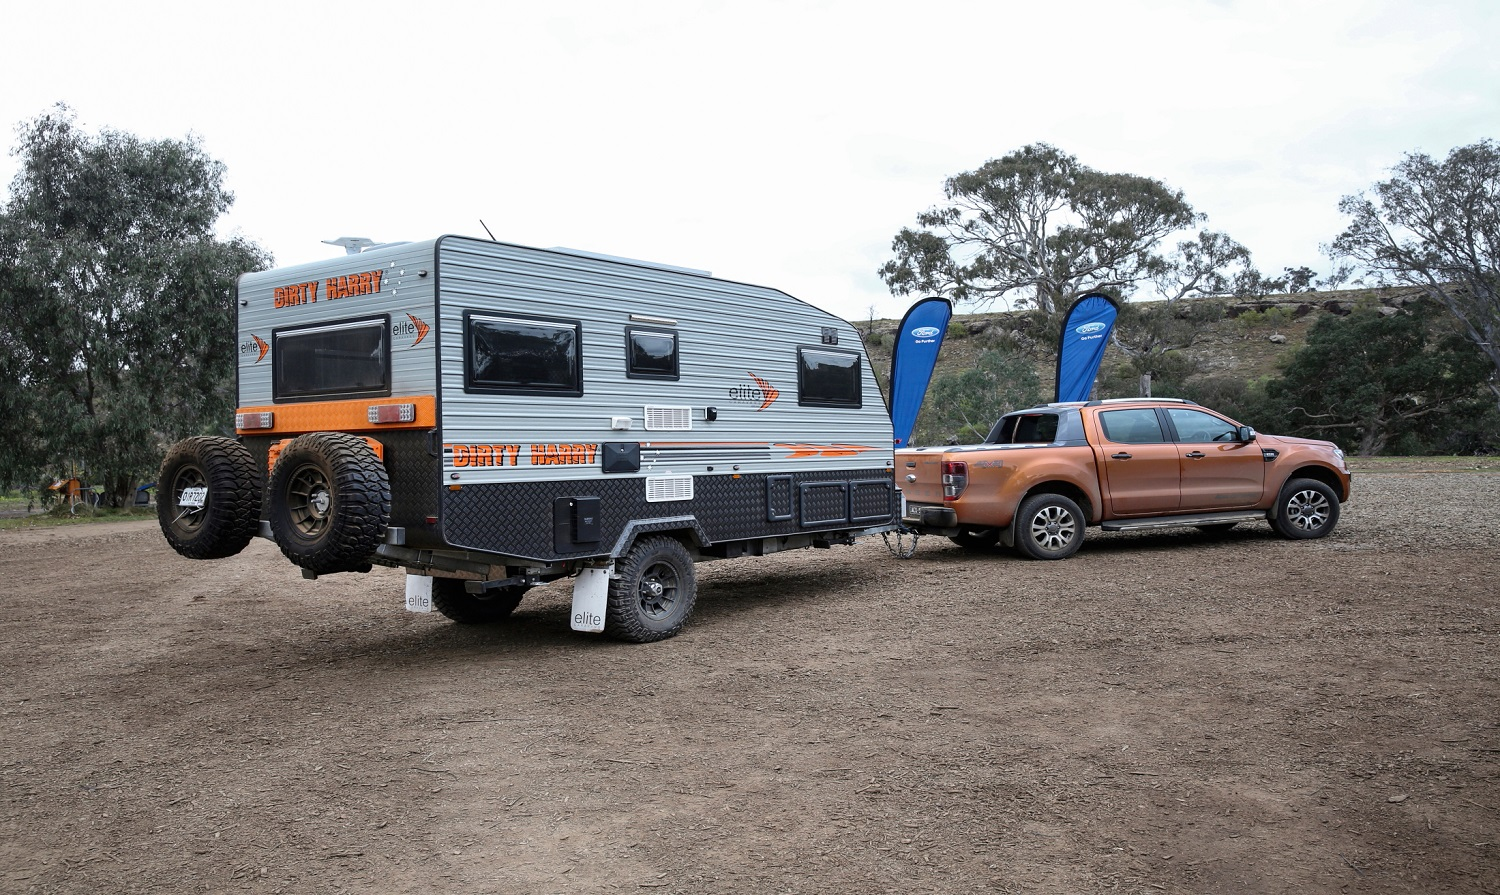 A Ford Ranger has a low payload when hitched